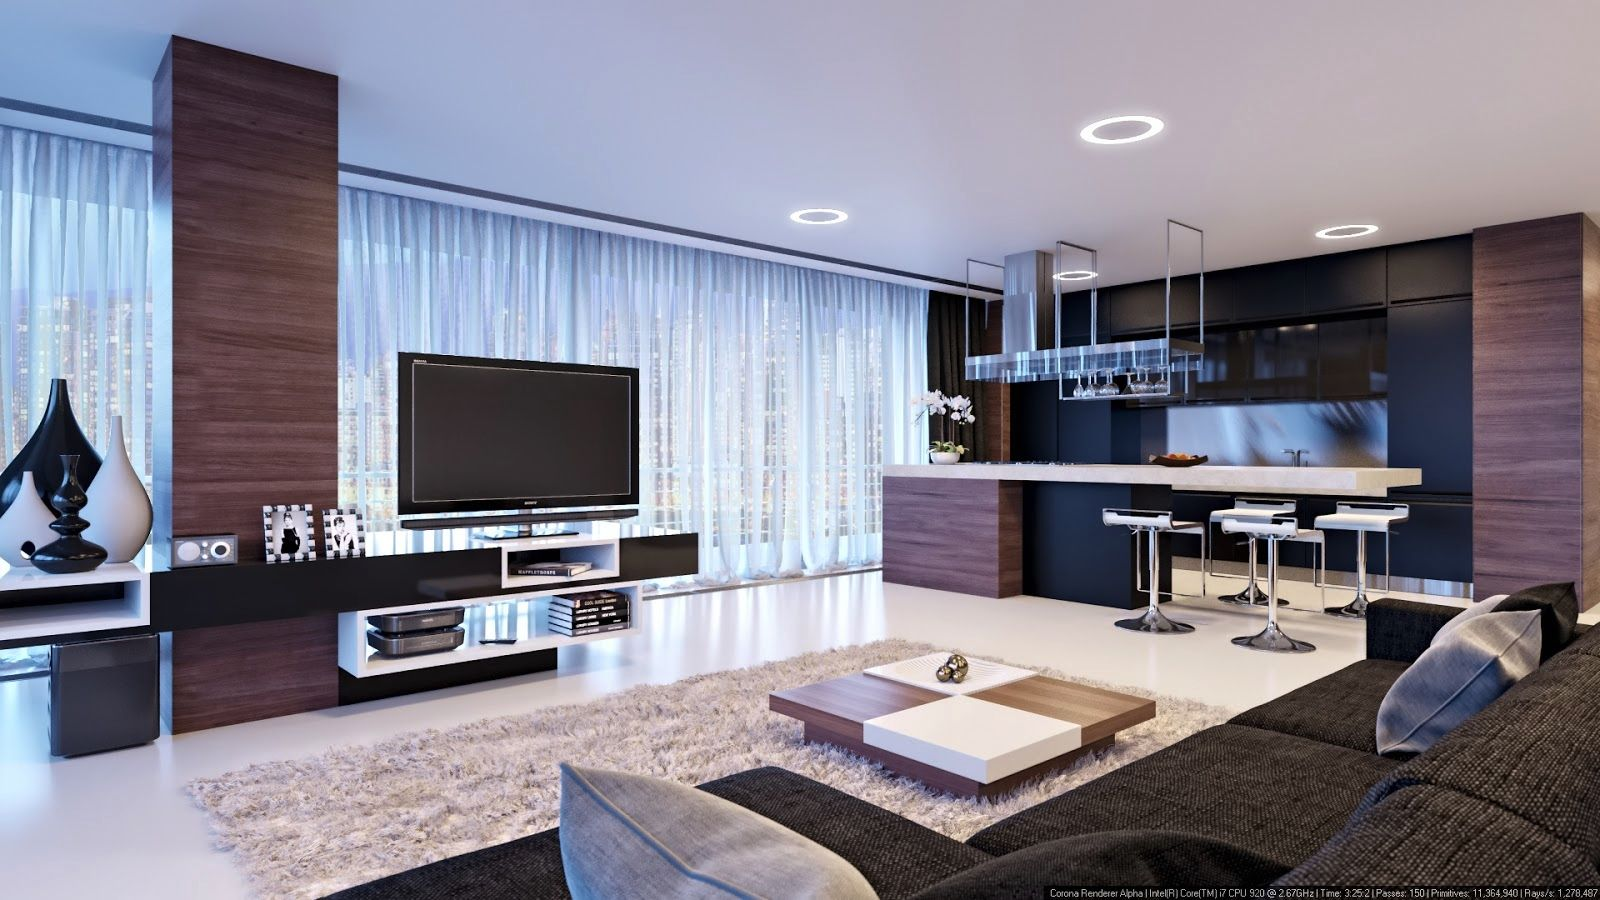 Homey Feeling Room Designs